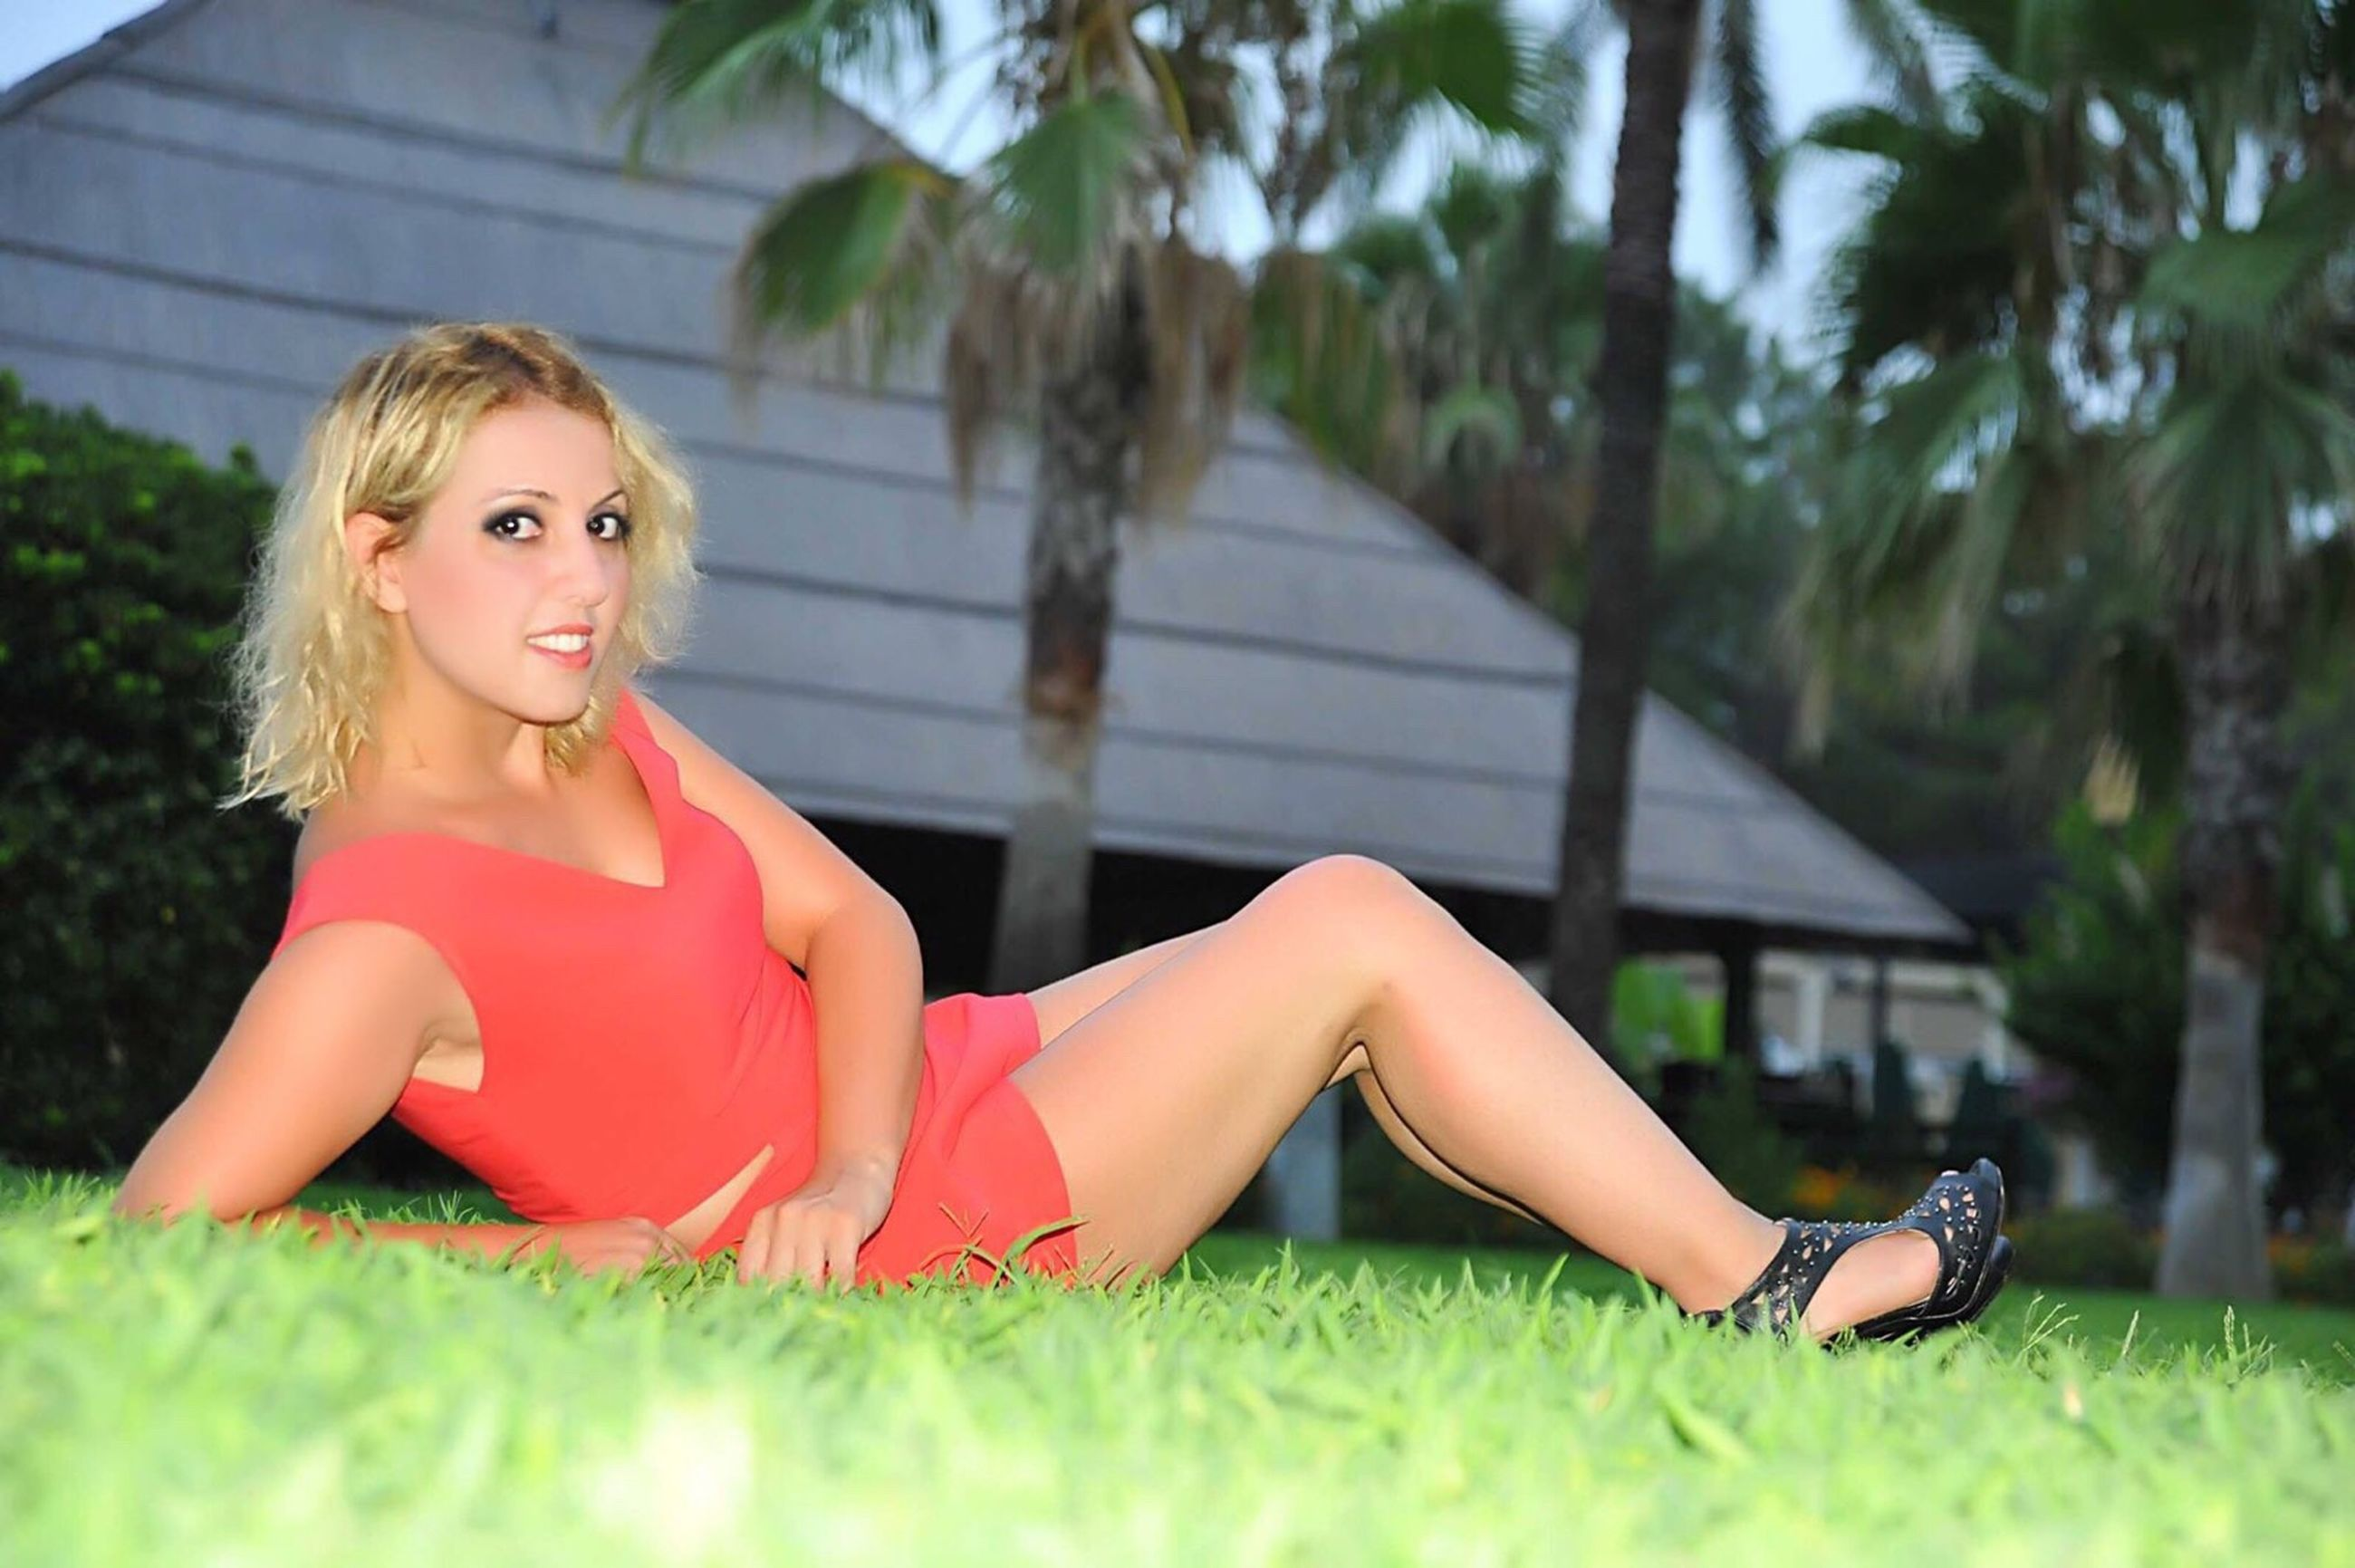 person, young women, grass, selective focus, young adult, long hair, leisure activity, sitting, casual clothing, lifestyles, full length, dress, beauty, lying down, summer, playing, red, day, relaxation, getting away from it all, cross-legged, outdoors, weekend activities, innocence, focus on foreground, nature